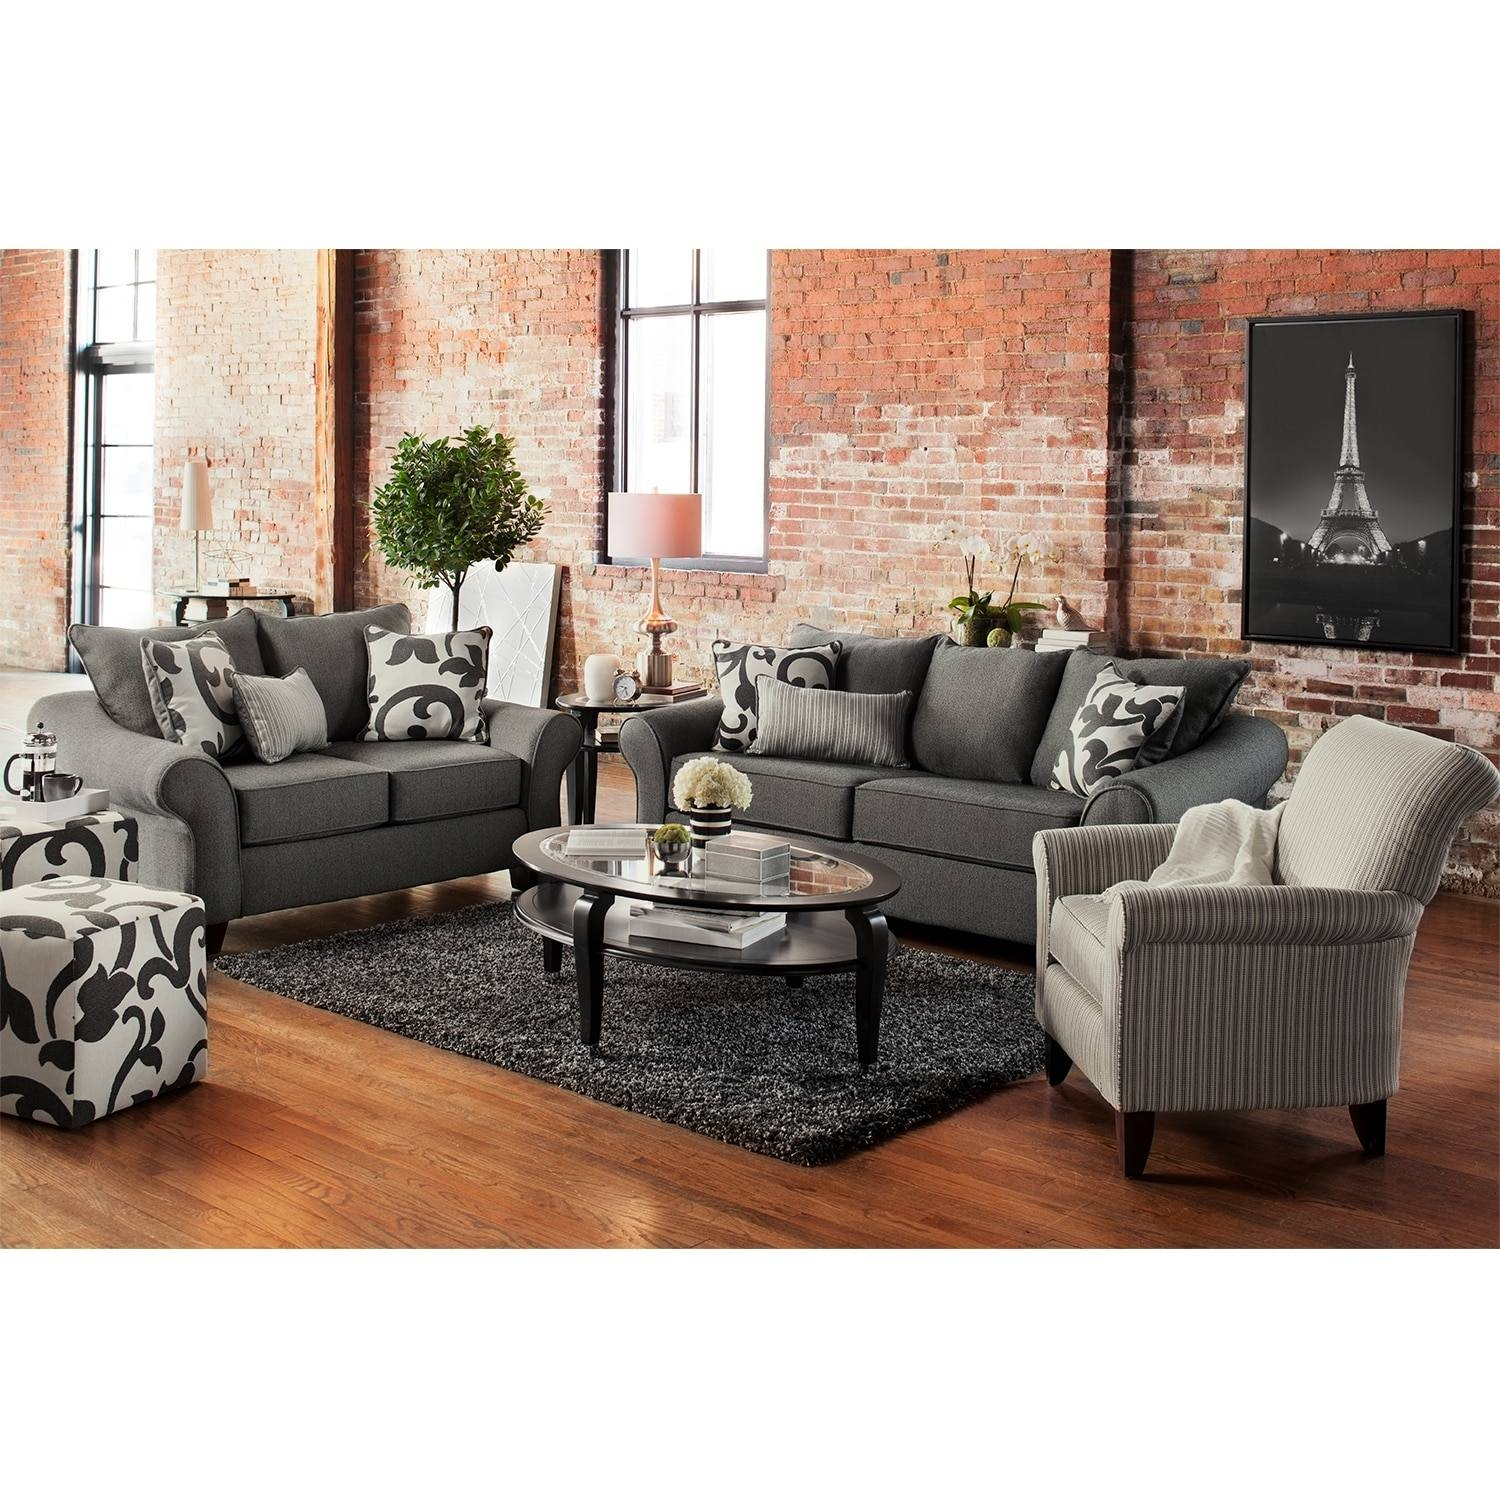 Colette Sofa, Loveseat And Accent Chair Set - Gray | American for Sofa Loveseat and Chairs (Image 7 of 30)